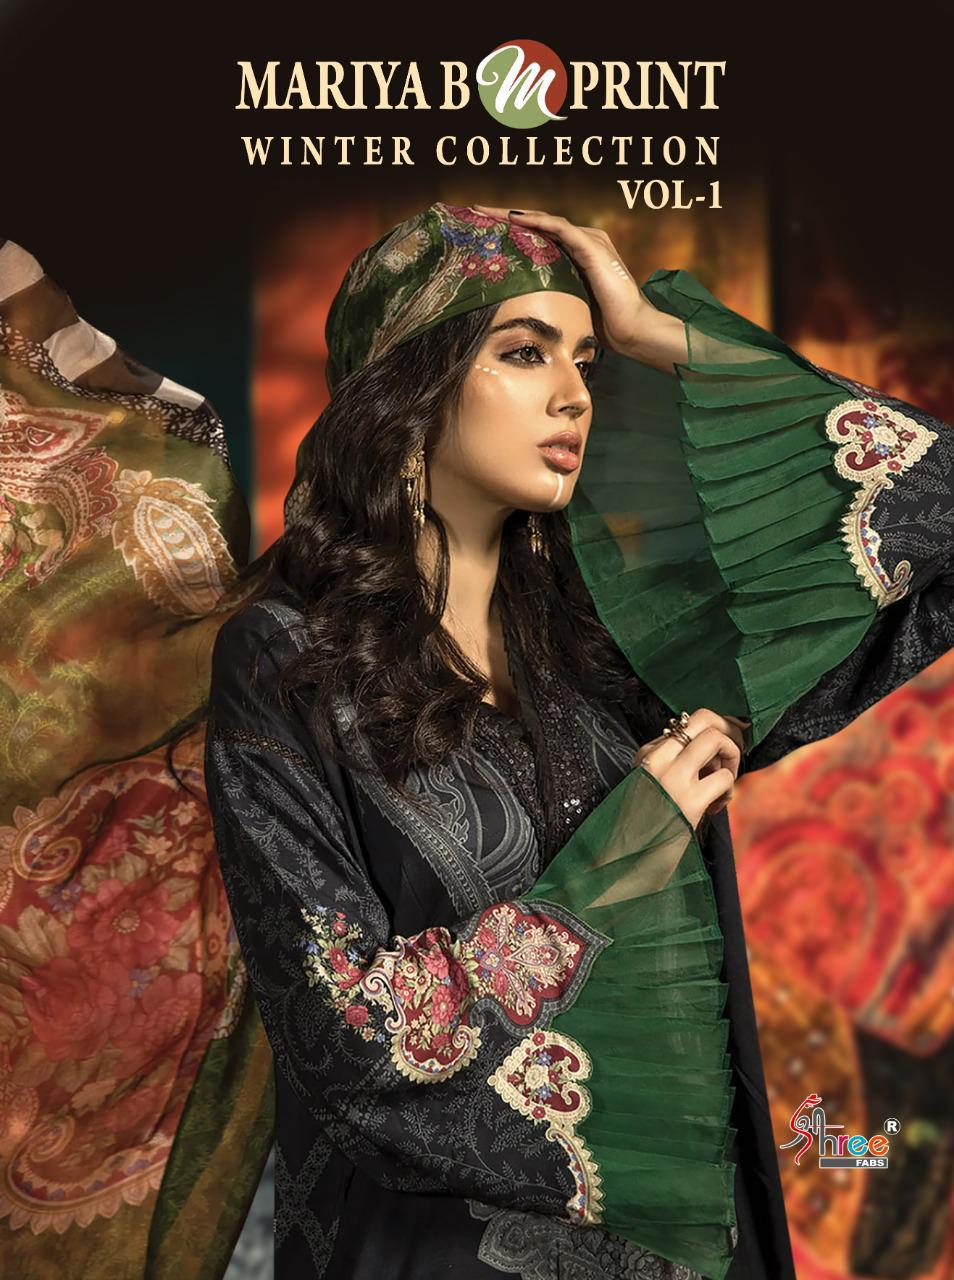 Shree Fabs Mariya B MPrint Winter Collection Vol 1 Salwar Suit Wholesale Catalog 8 Pcs 1 - Shree Fabs Mariya B MPrint Winter Collection Vol 1 Salwar Suit Wholesale Catalog 8 Pcs